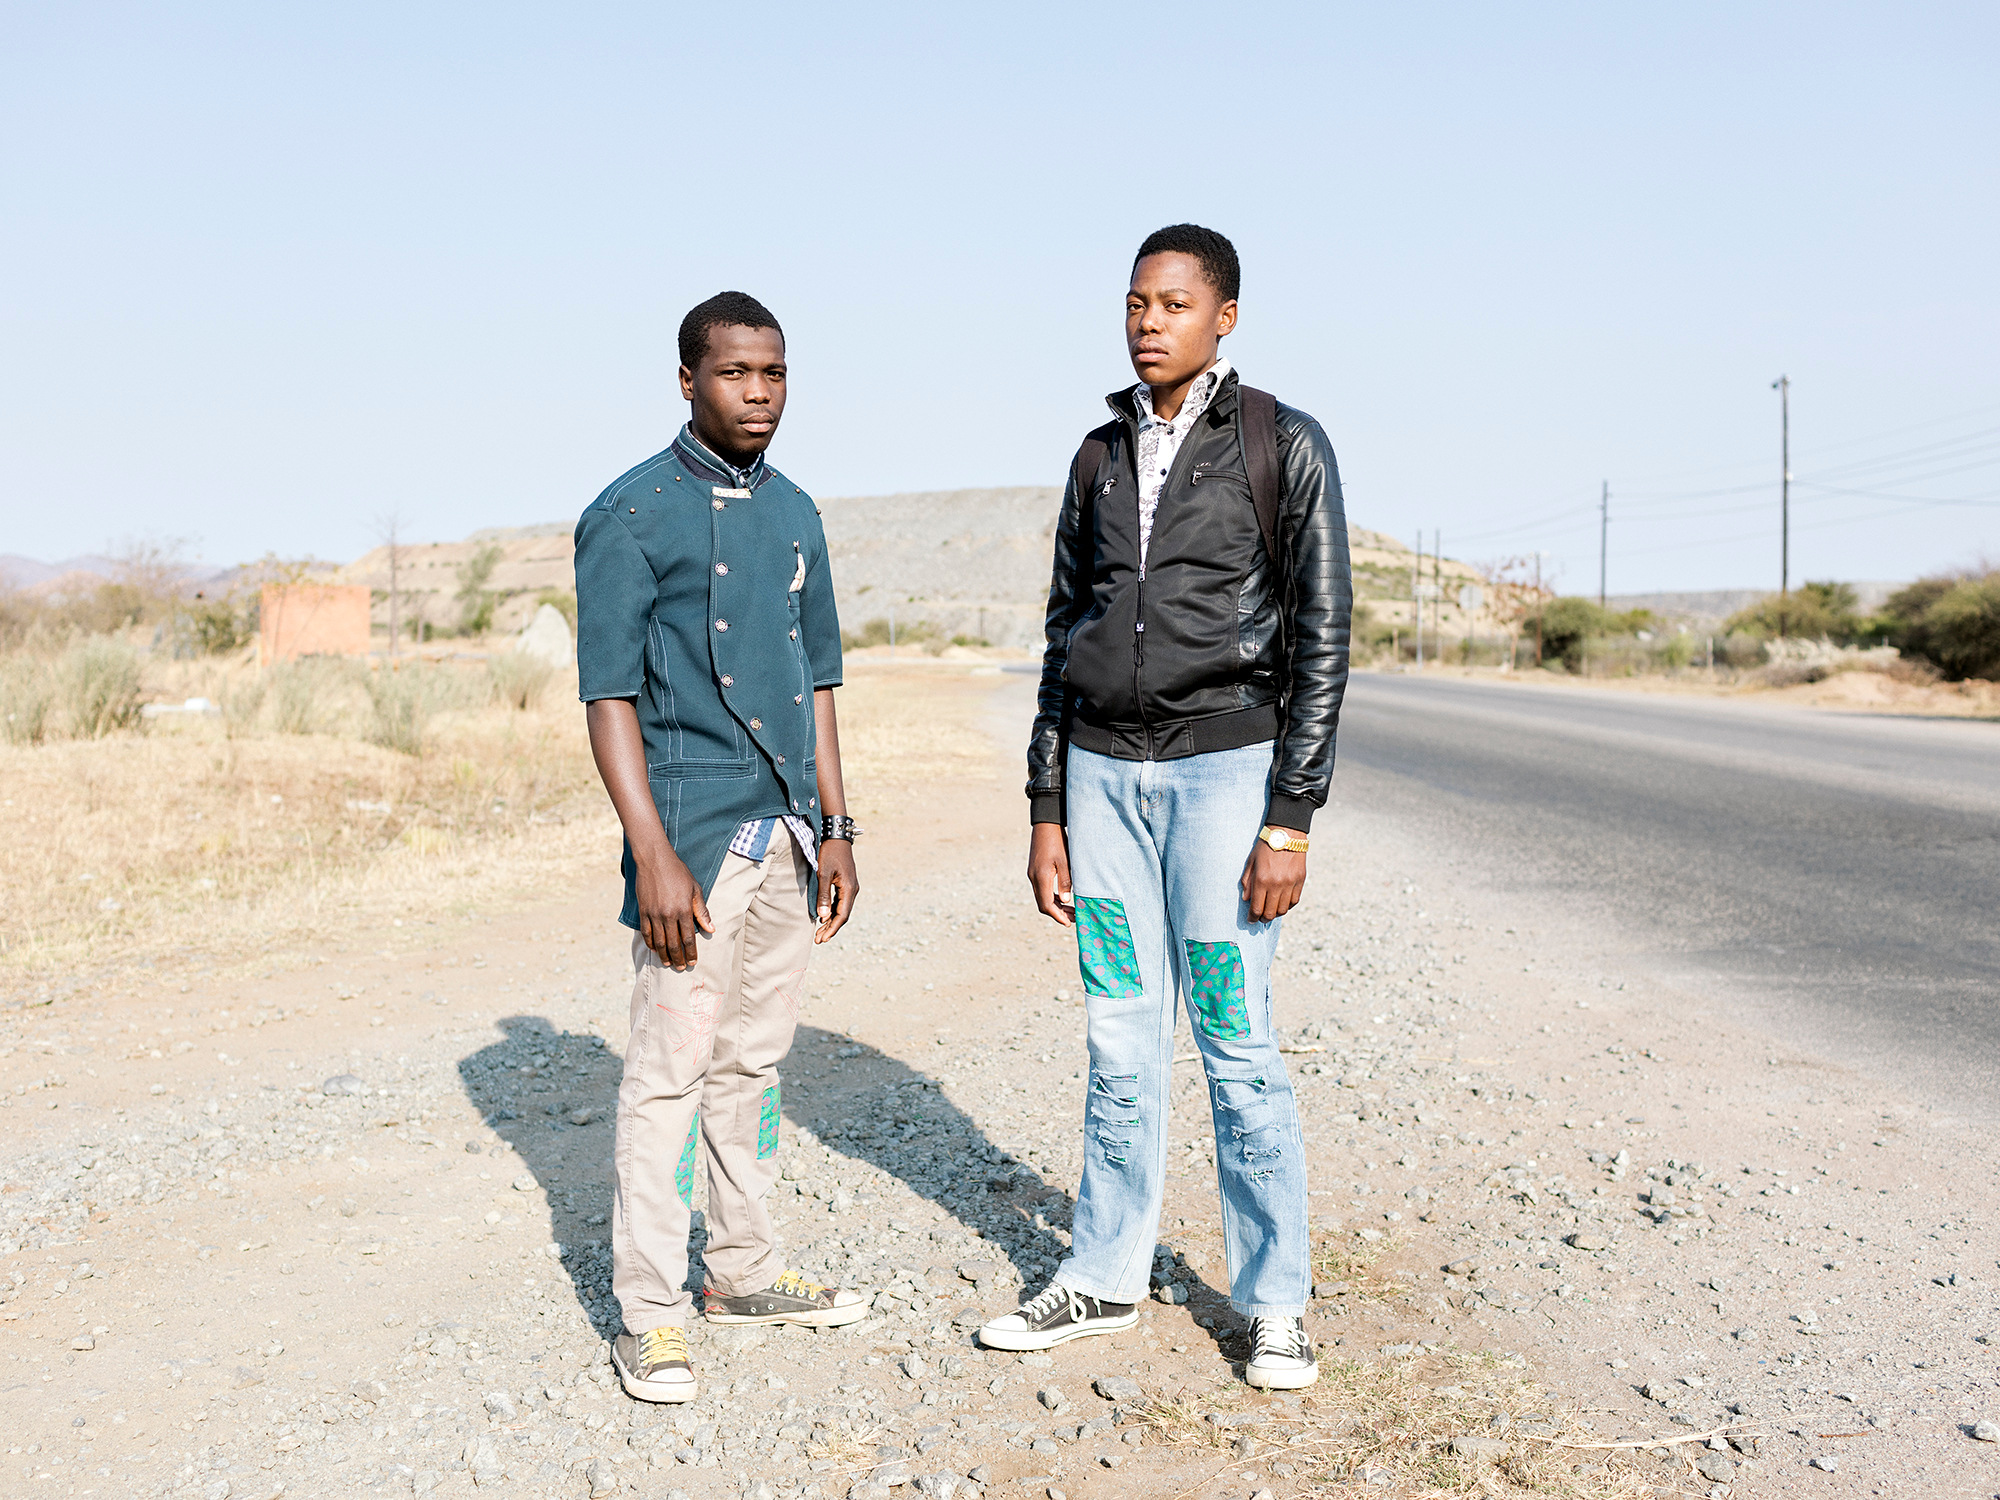 Jankie Mathebula, 18 and Solly Machoga, 19, Hans Village, Mapela, Limpopo, Northern Limb